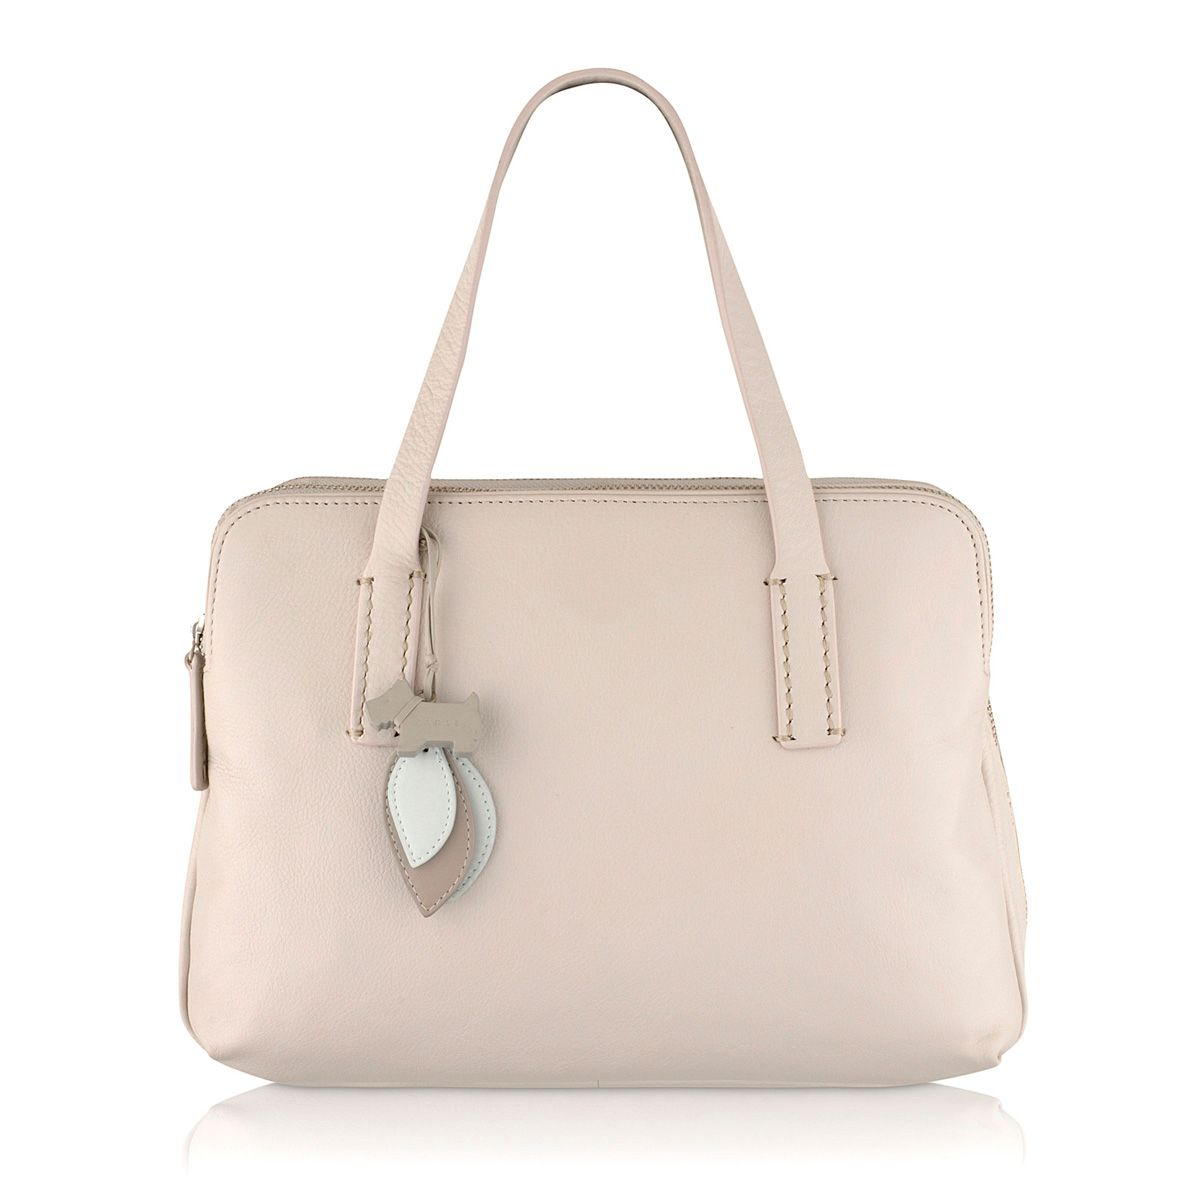 Bayer cream medium leather tote bag